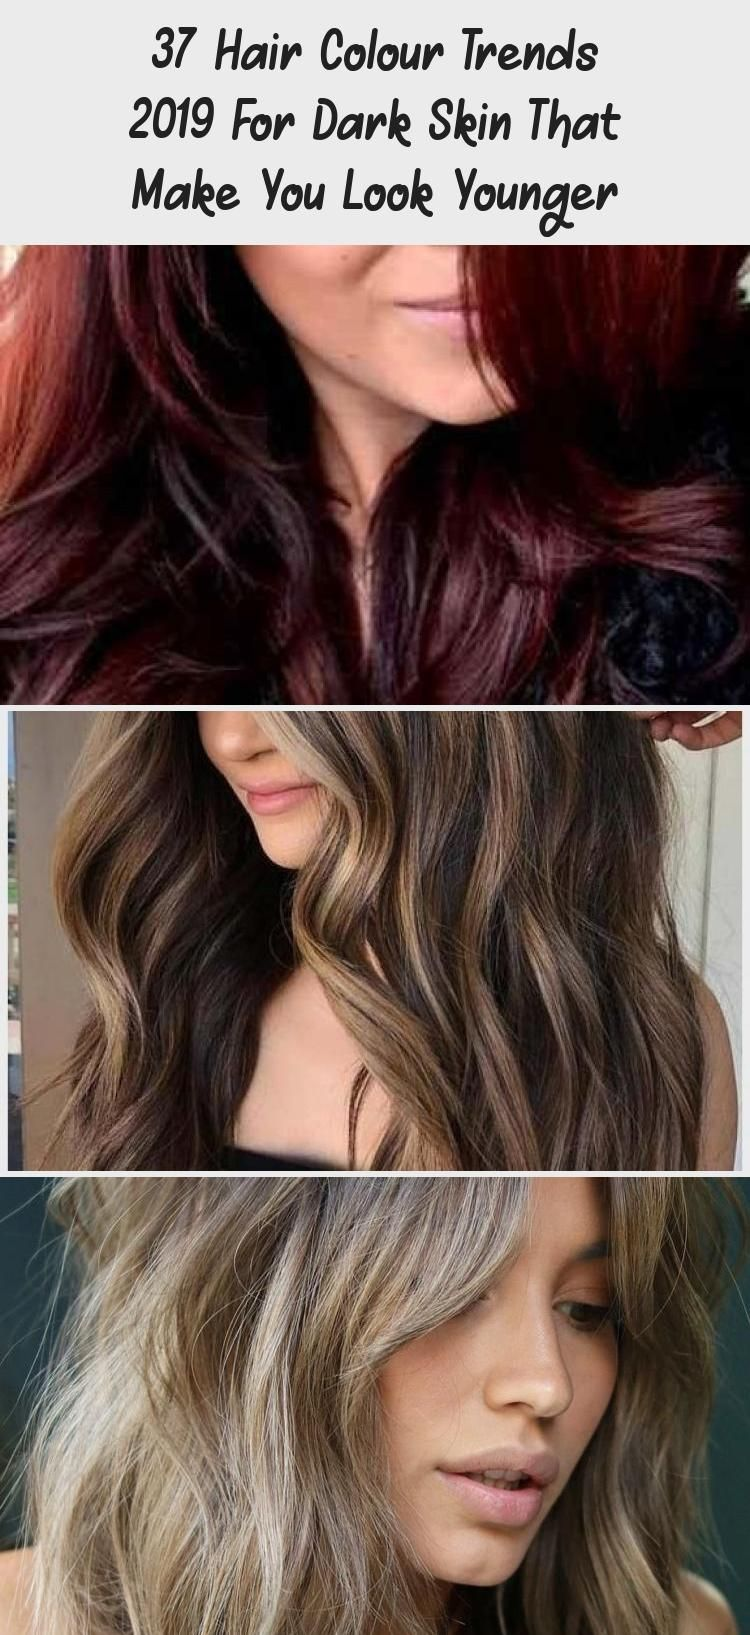 37 Hair Colour Trends 2019 For Dark Skin That Make You Look Younger Hair Colour Style Hairtrendsshag Naturalhairt Younger Hair Hair Color Trends Hair Color